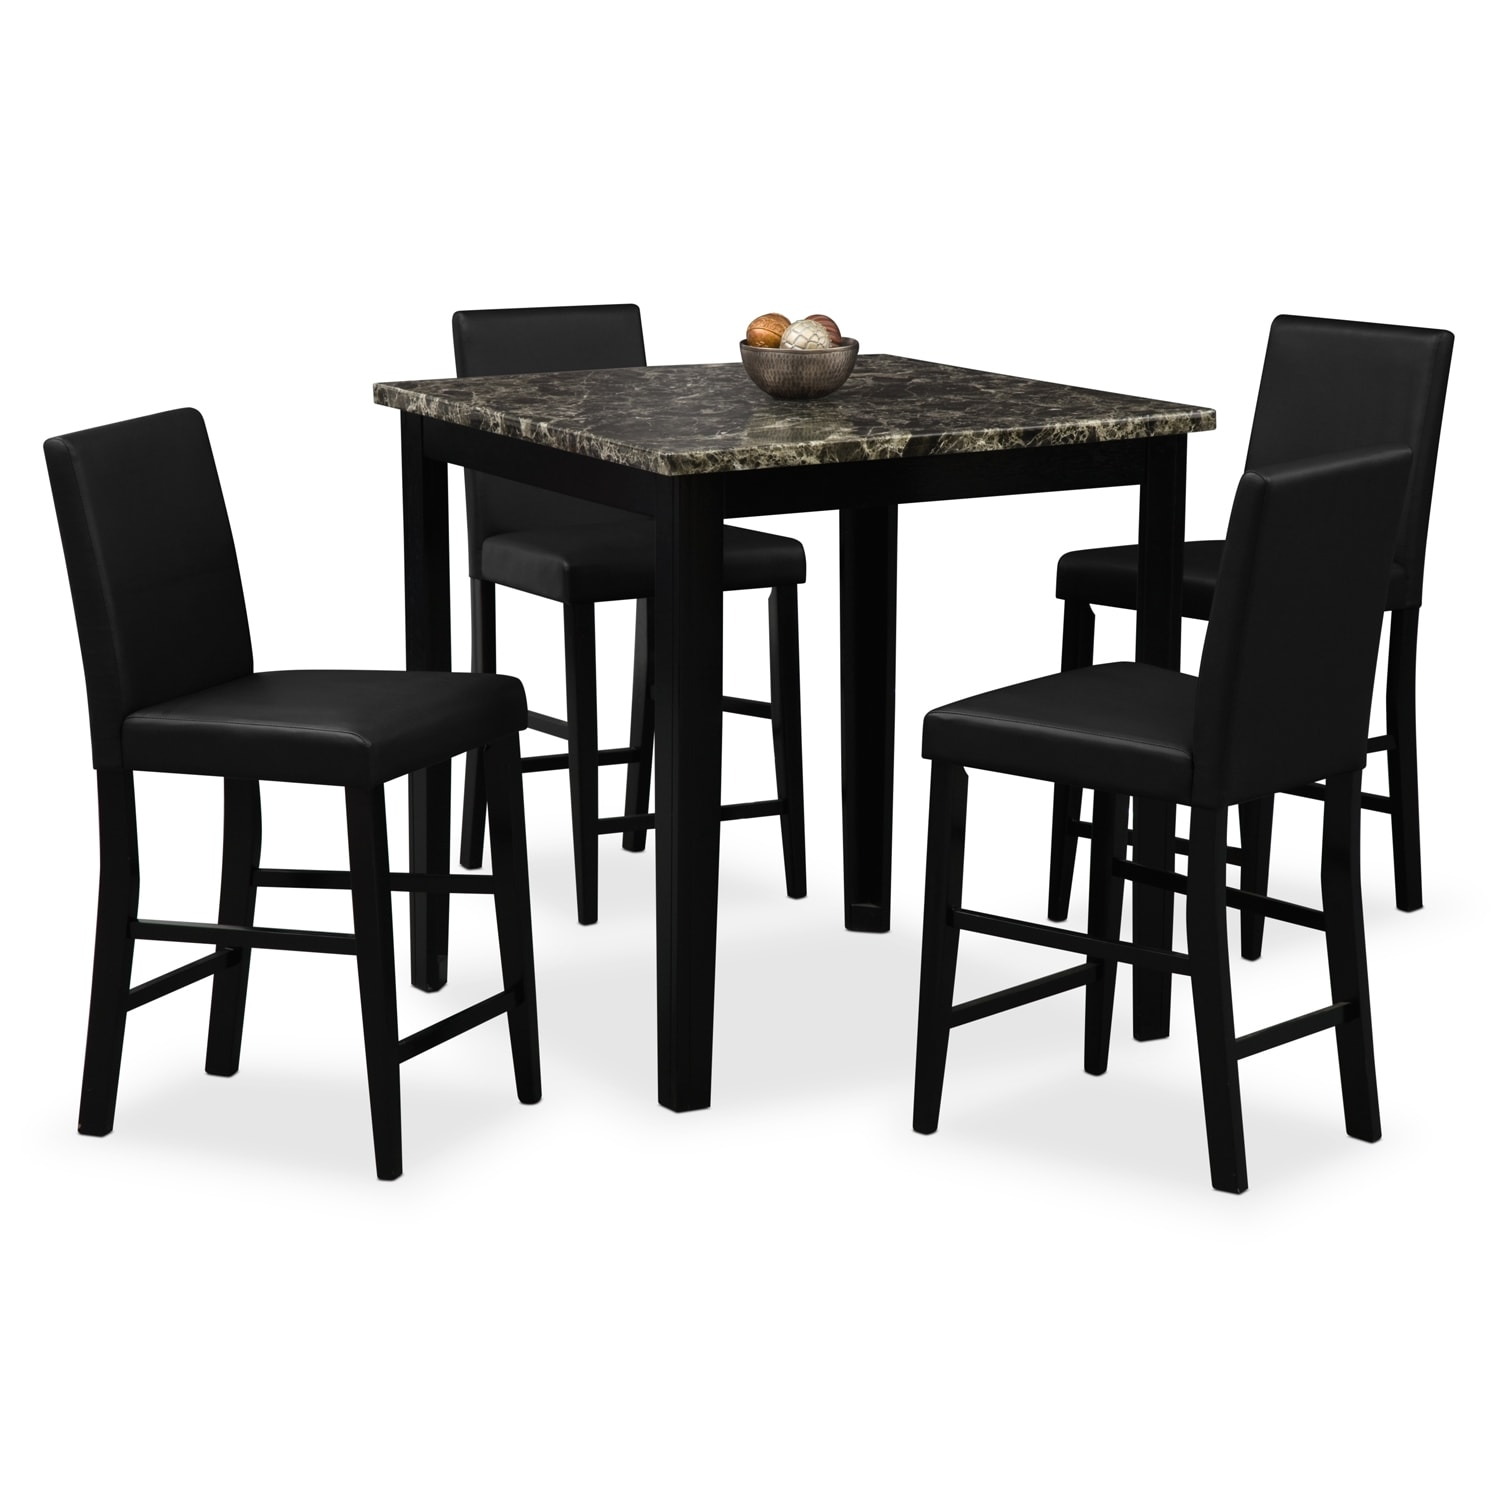 Shadow ii 5 pc counter height dinette value city furniture for Dining room furniture images